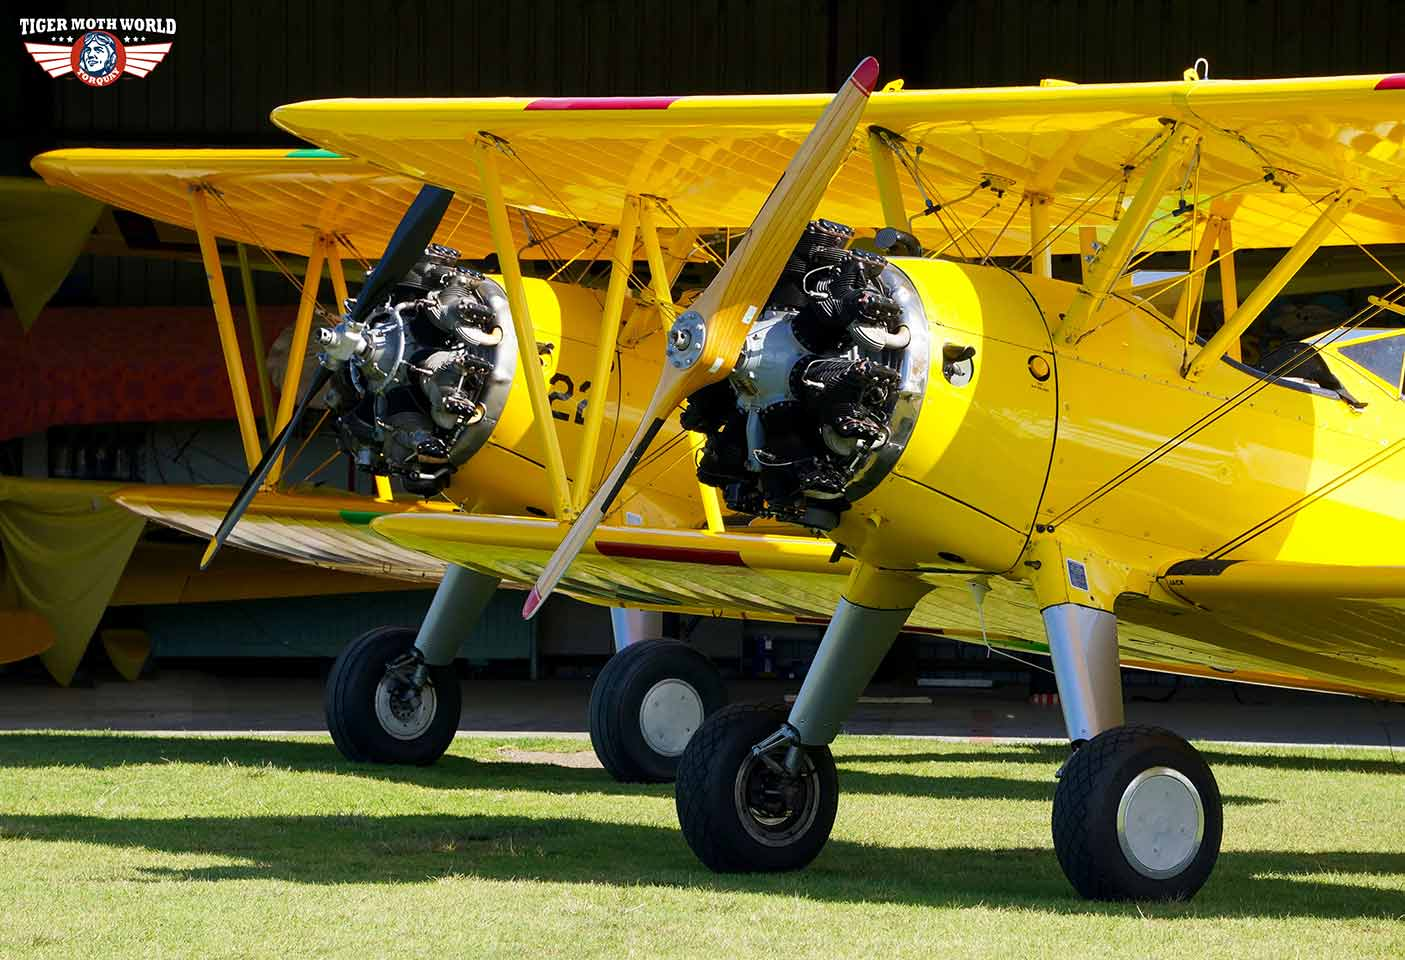 Tiger Moth World biplanes ready for take off at Torquay